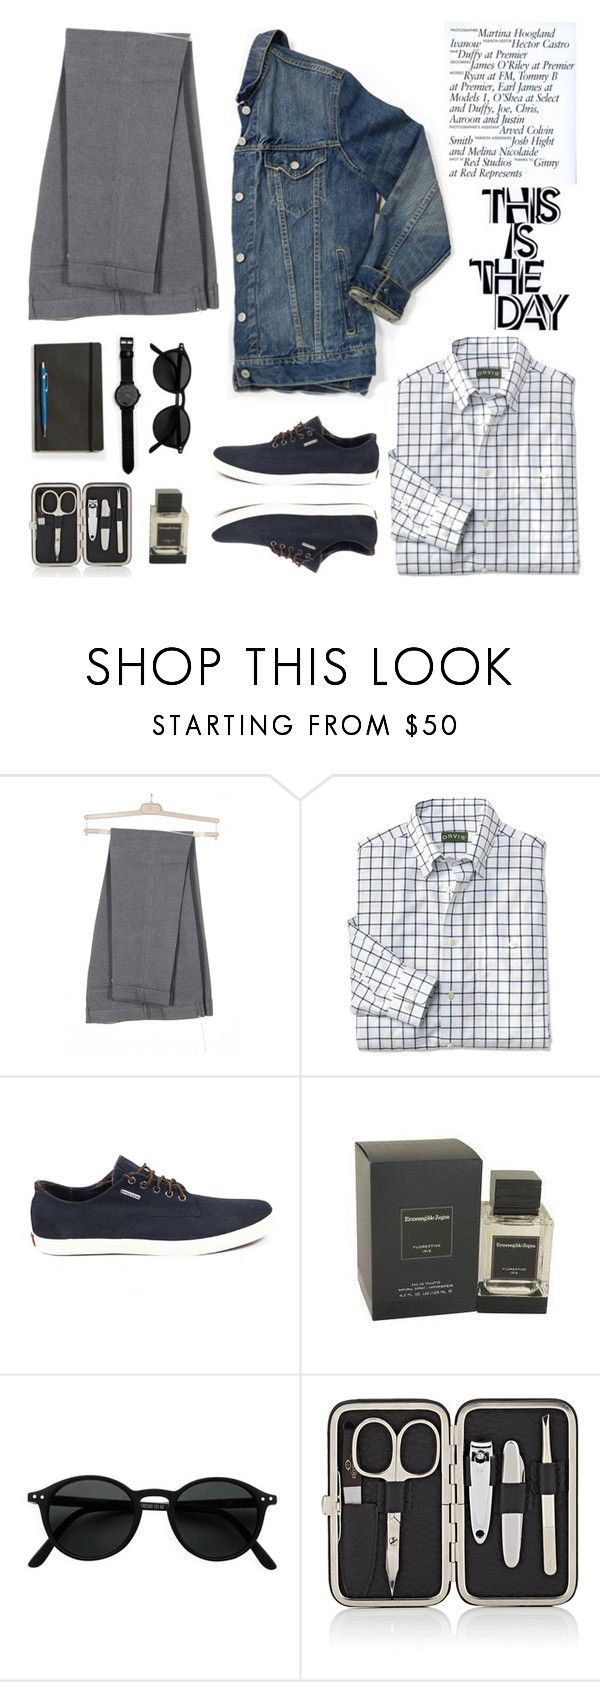 """This is the day"" by lux-life ❤ liked on Polyvore featuring Grown Alchemist, Izipizi, Barneys New York, Comme des Garçons, men's fashion and menswear"